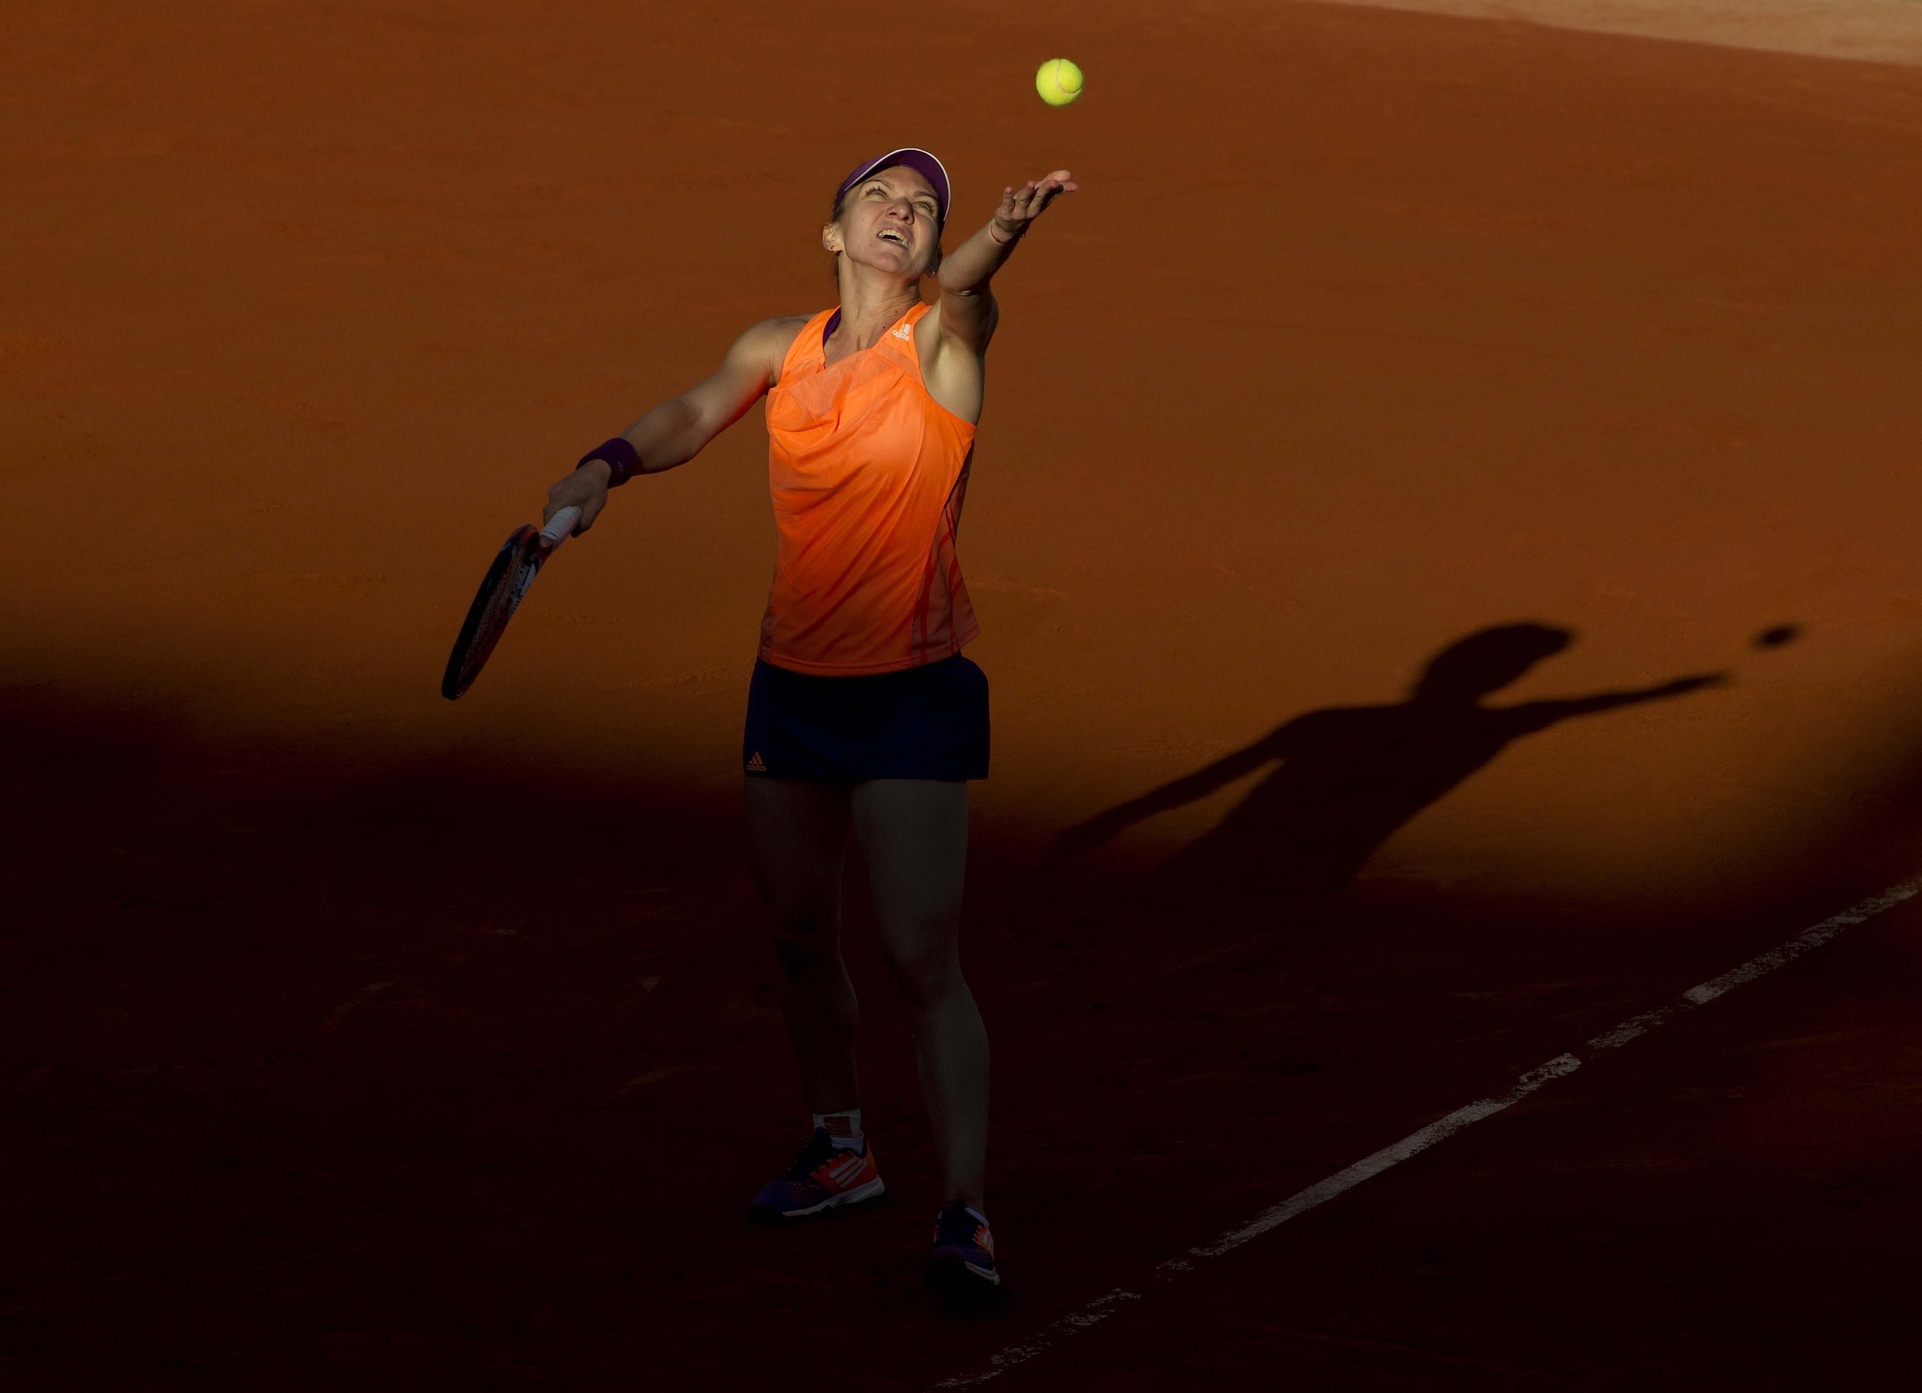 Simona Halep has emerged from the shadows not just in 2014, but over the past 12 months. Saturday, she will try to refute the notion that playing in one's first major final represents an occasion far too powerful for a young player's nerves.